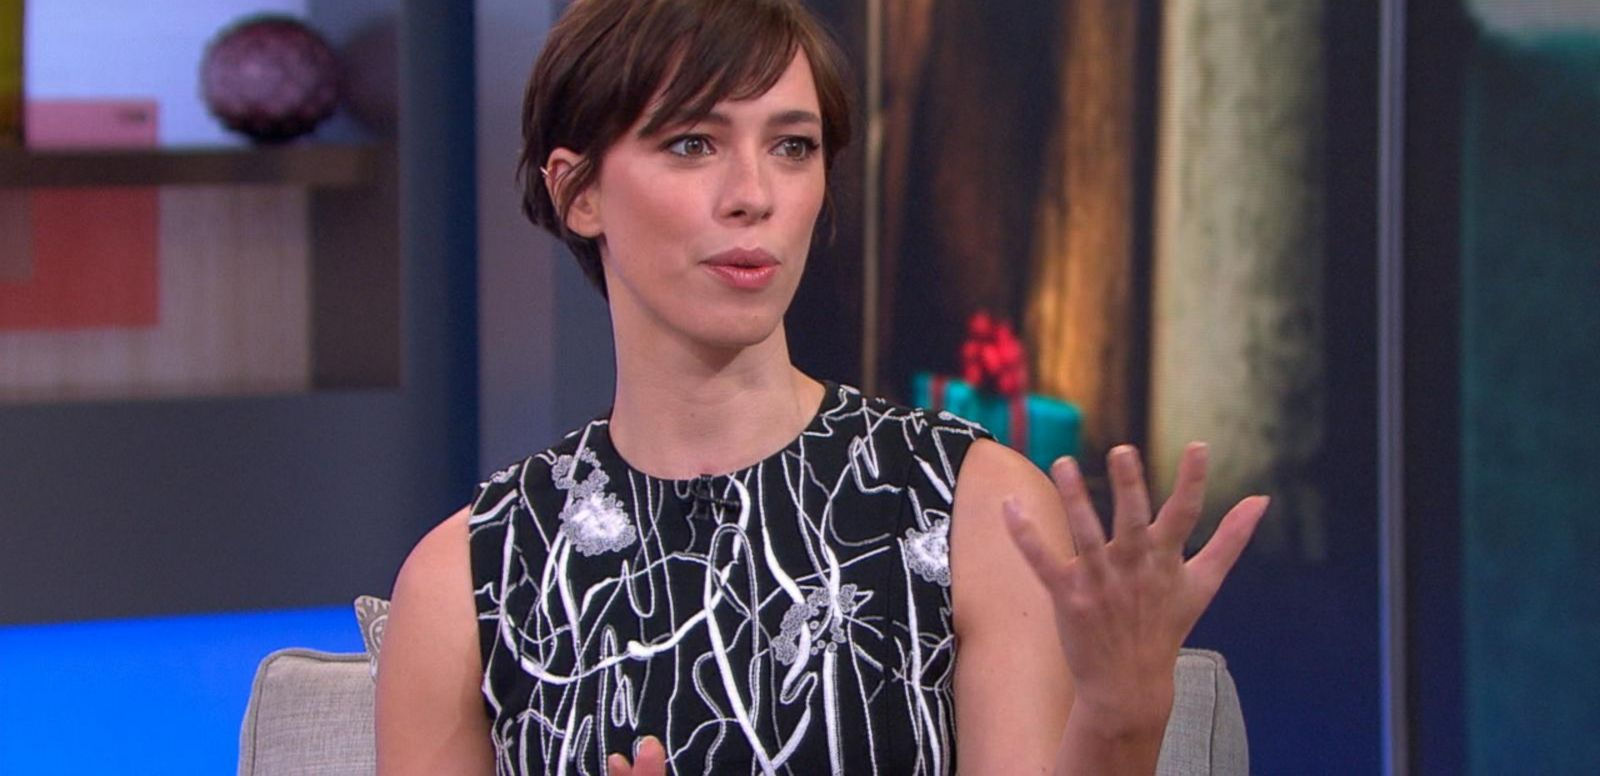 VIDEO: Rebecca Hall Discusses the Thrills Behind New Film 'The Gift'